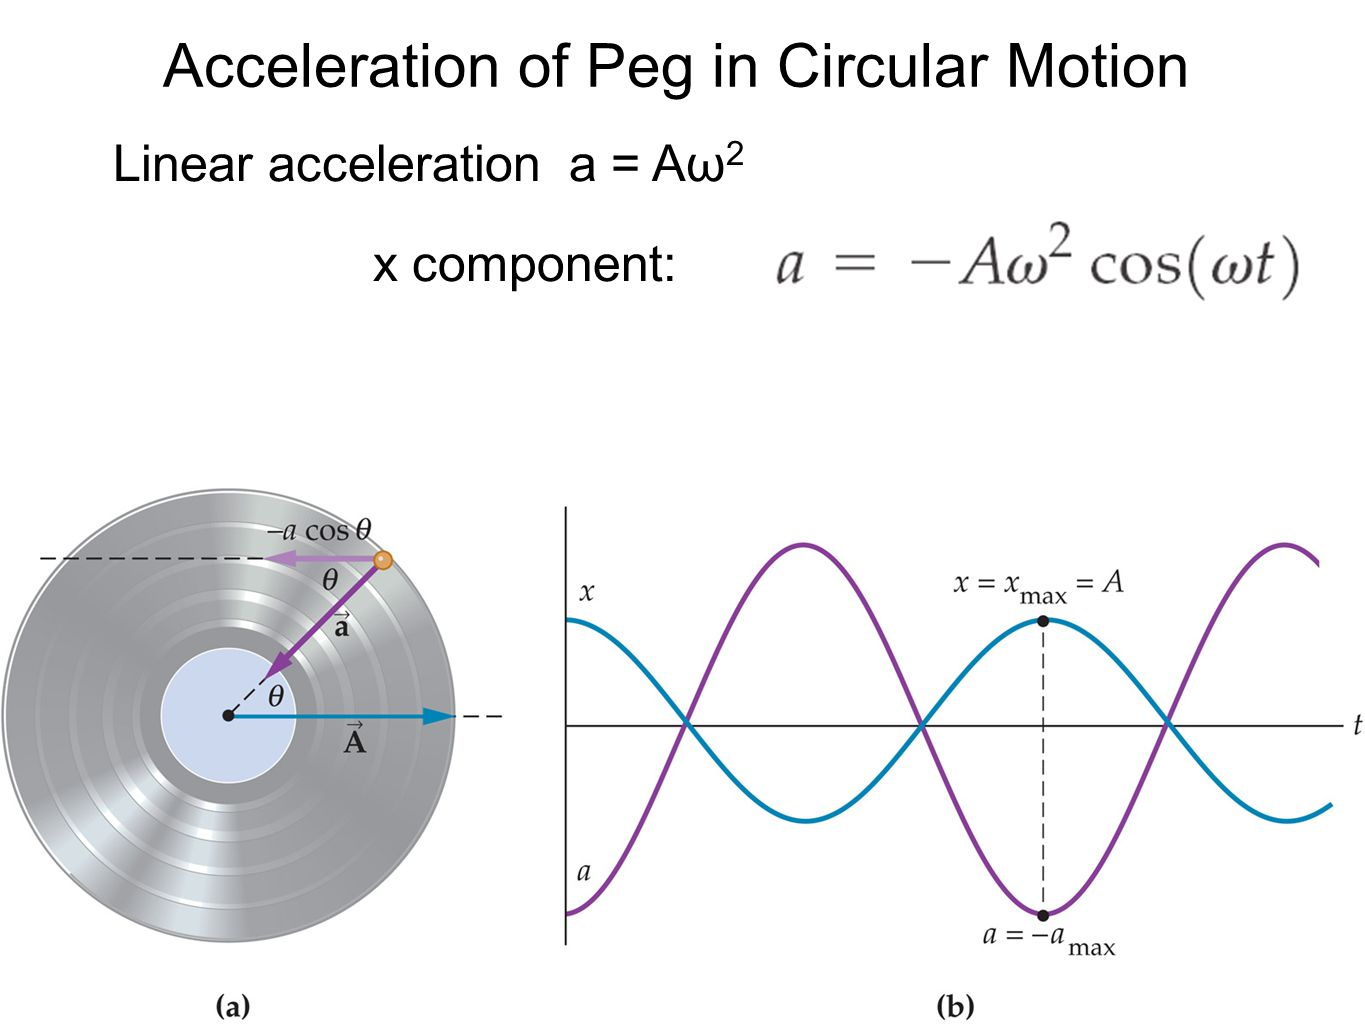 Acceleration of Peg in Circular Motion